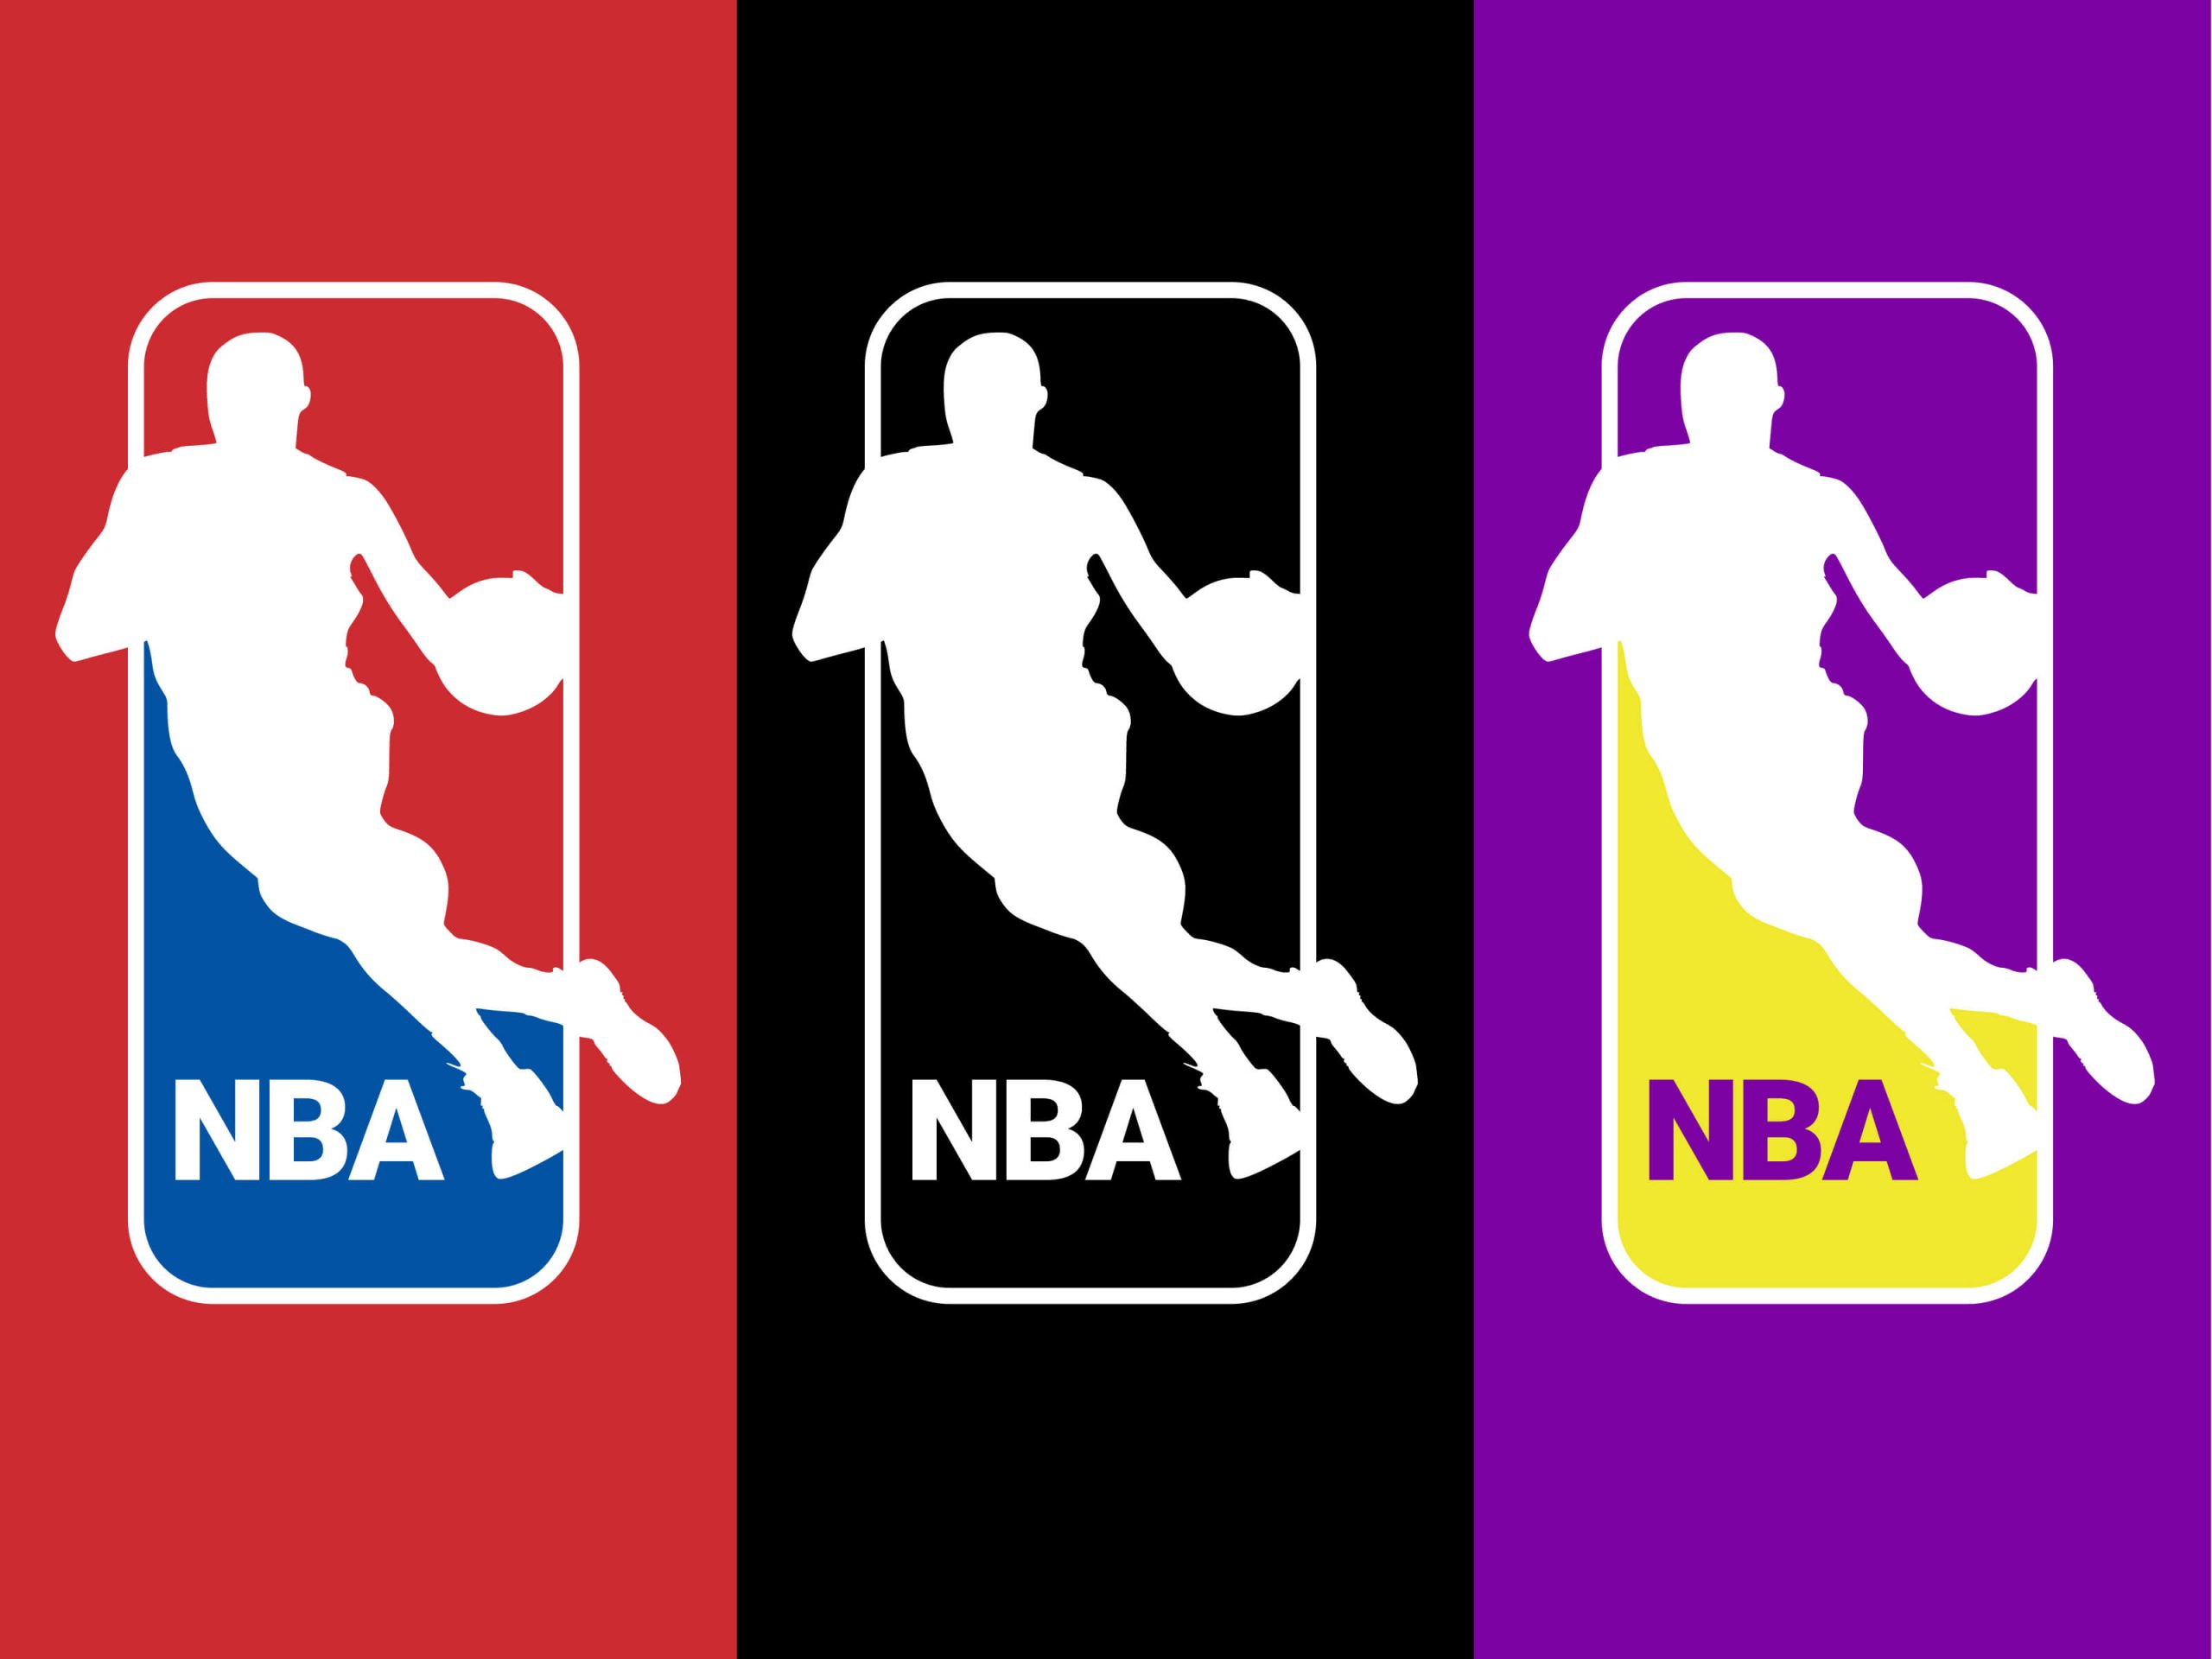 James Drake – Kobe - NBA Logo Redesign